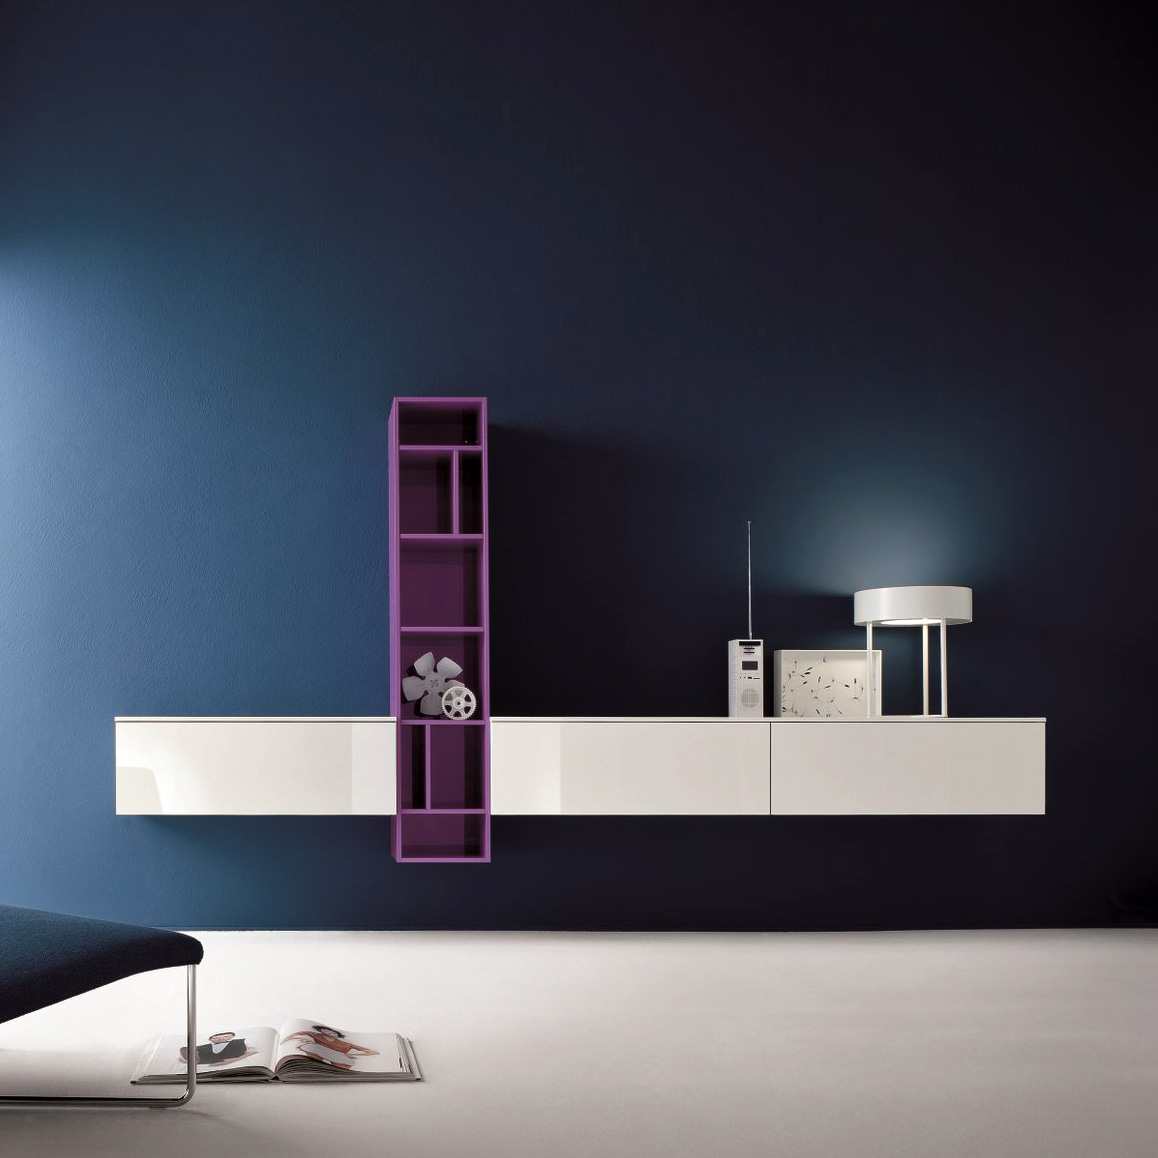 italian-contemporary-furniture-slim-6-wall-mounted-tv-unit-media-stand-with-shelves-lounge-living-room-by-dallagnese.jpg